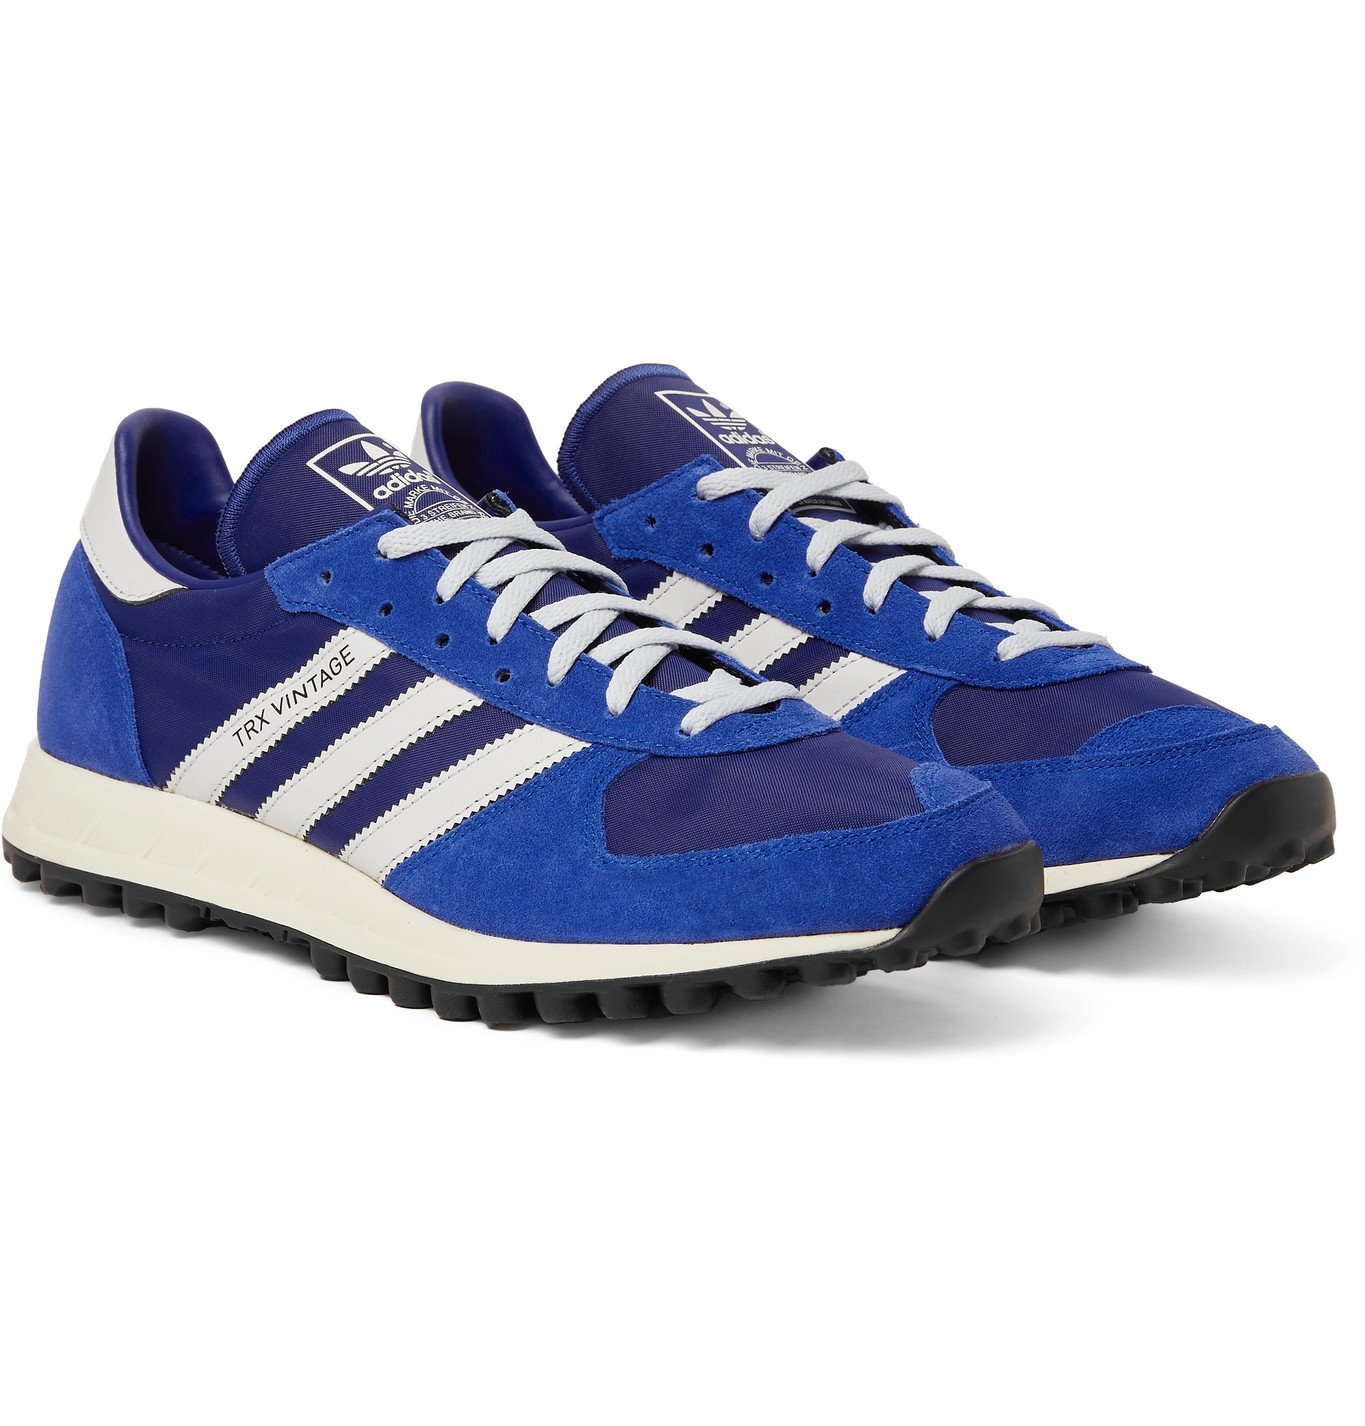 ADIDAS ORIGINALS - SPEZIAL TRX Vintage Leather-Trimmed Shell and Suede Sneakers - Blue